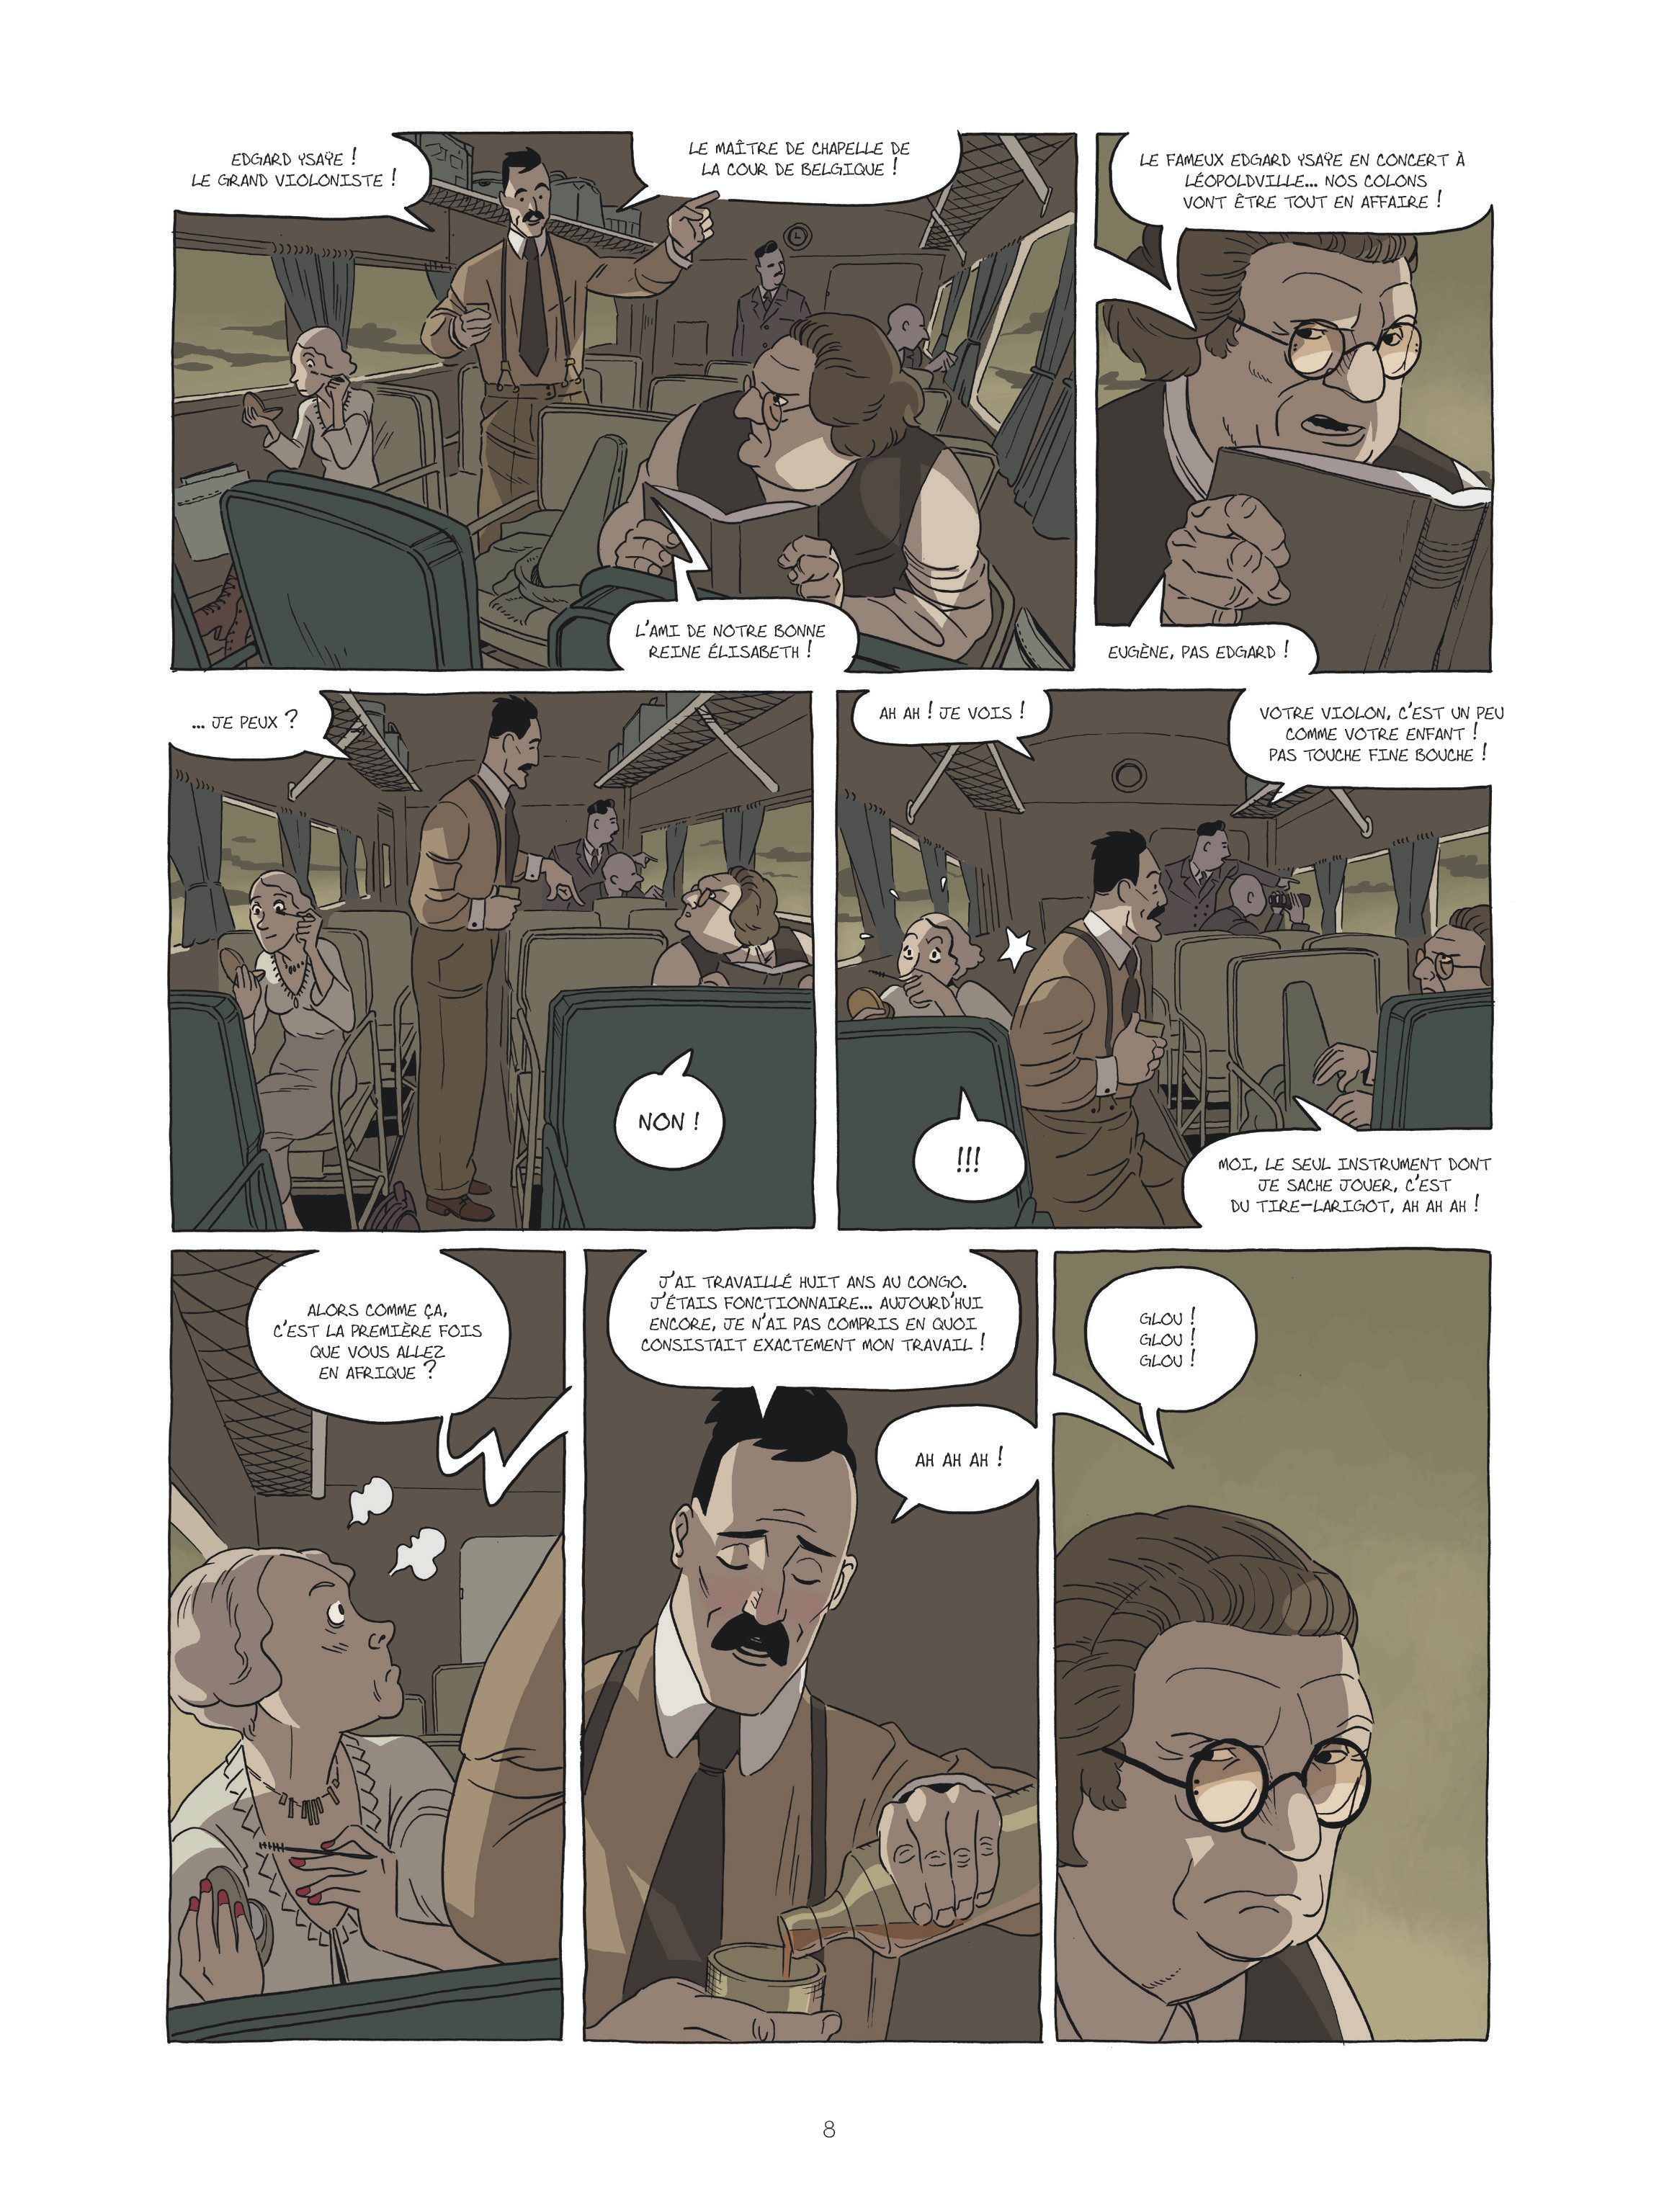 trilogie_africaine#2_Page 8